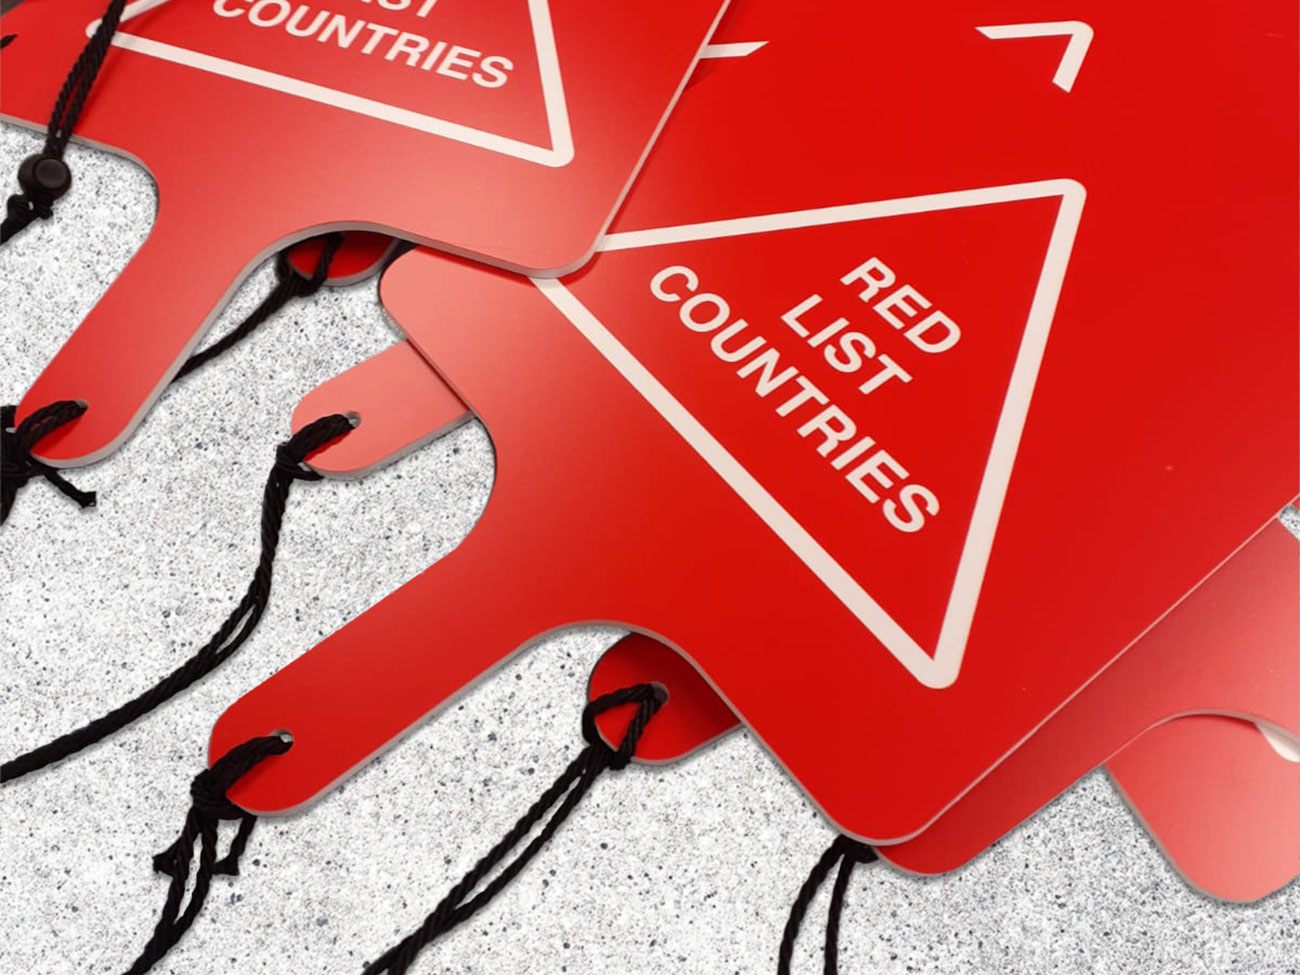 Red list countries paddle boards